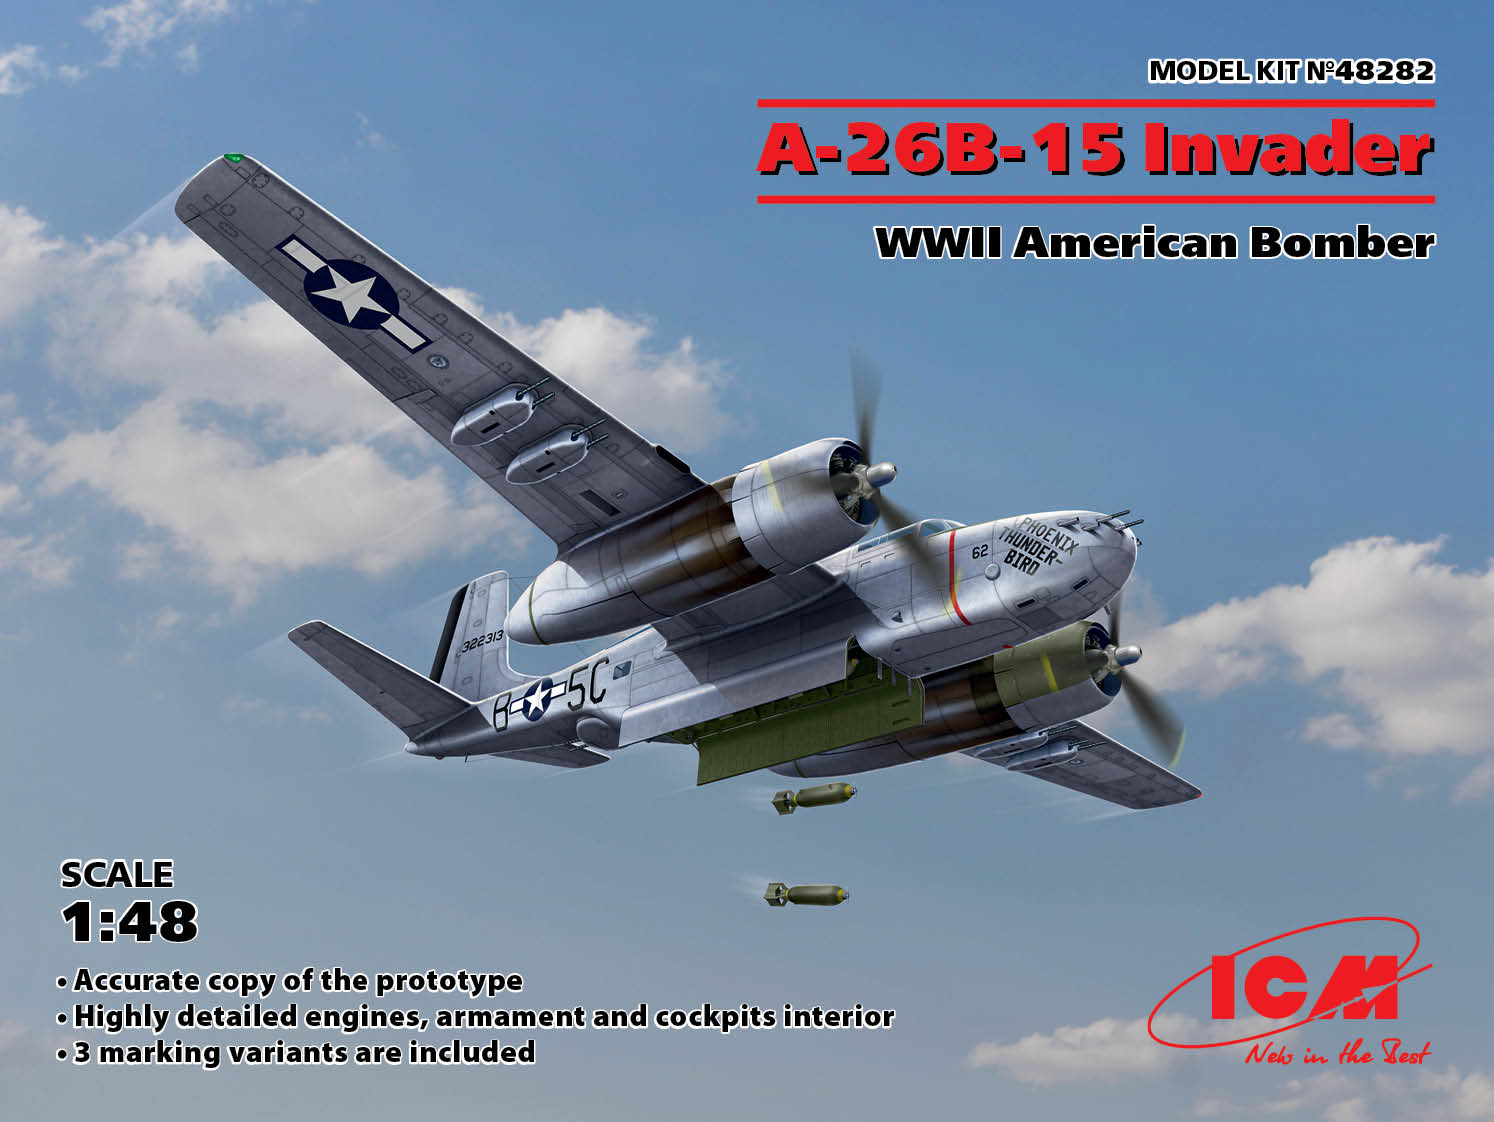 ICM 1/48 A-26B-15 Invader, WWII American Bomber